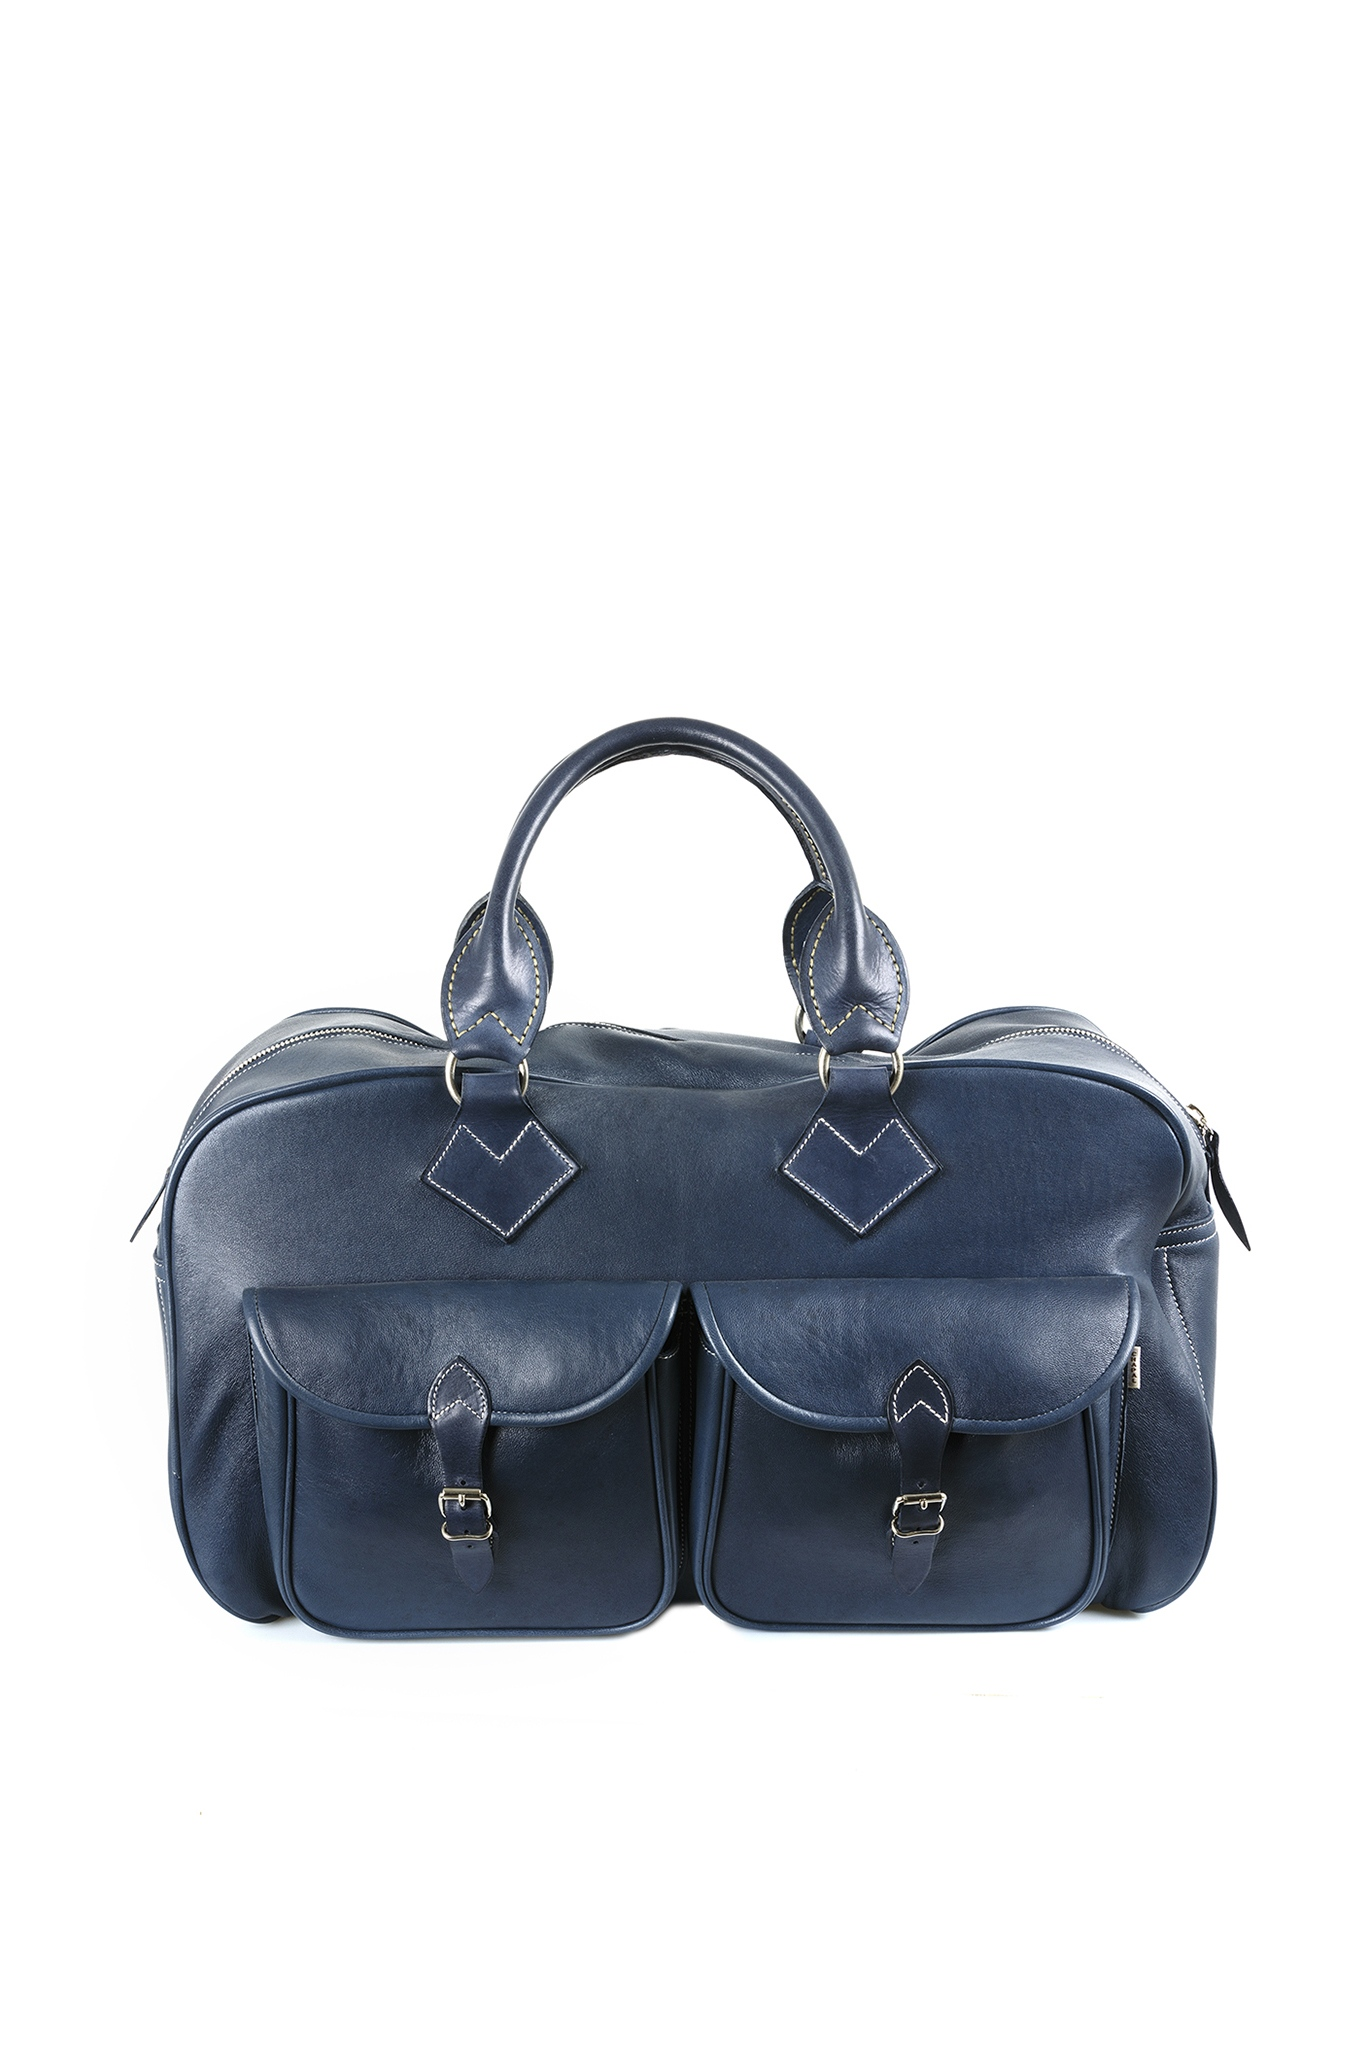 Home page - Travel Bag - Glossy leather - Blue color